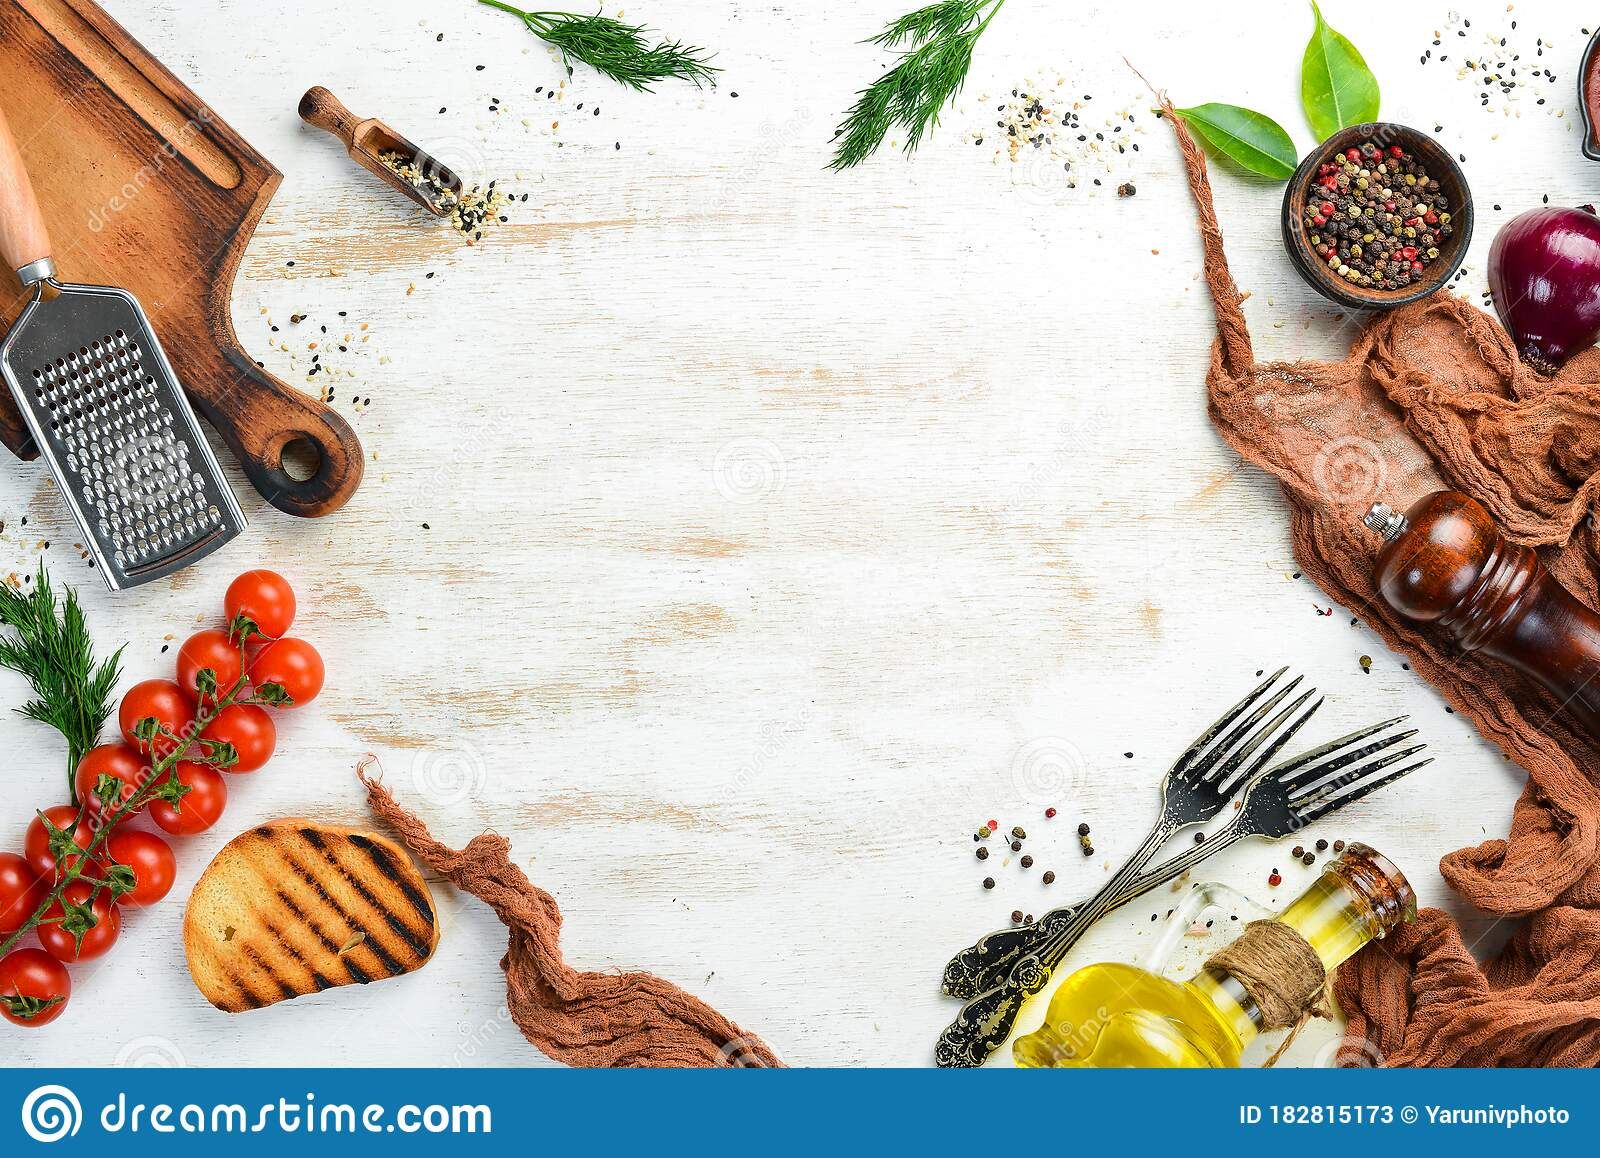 Cooking Banner Vegetables And Spices On A White Background Free Space For Your Text Stock Image Image Of Plant Fresh 182815173